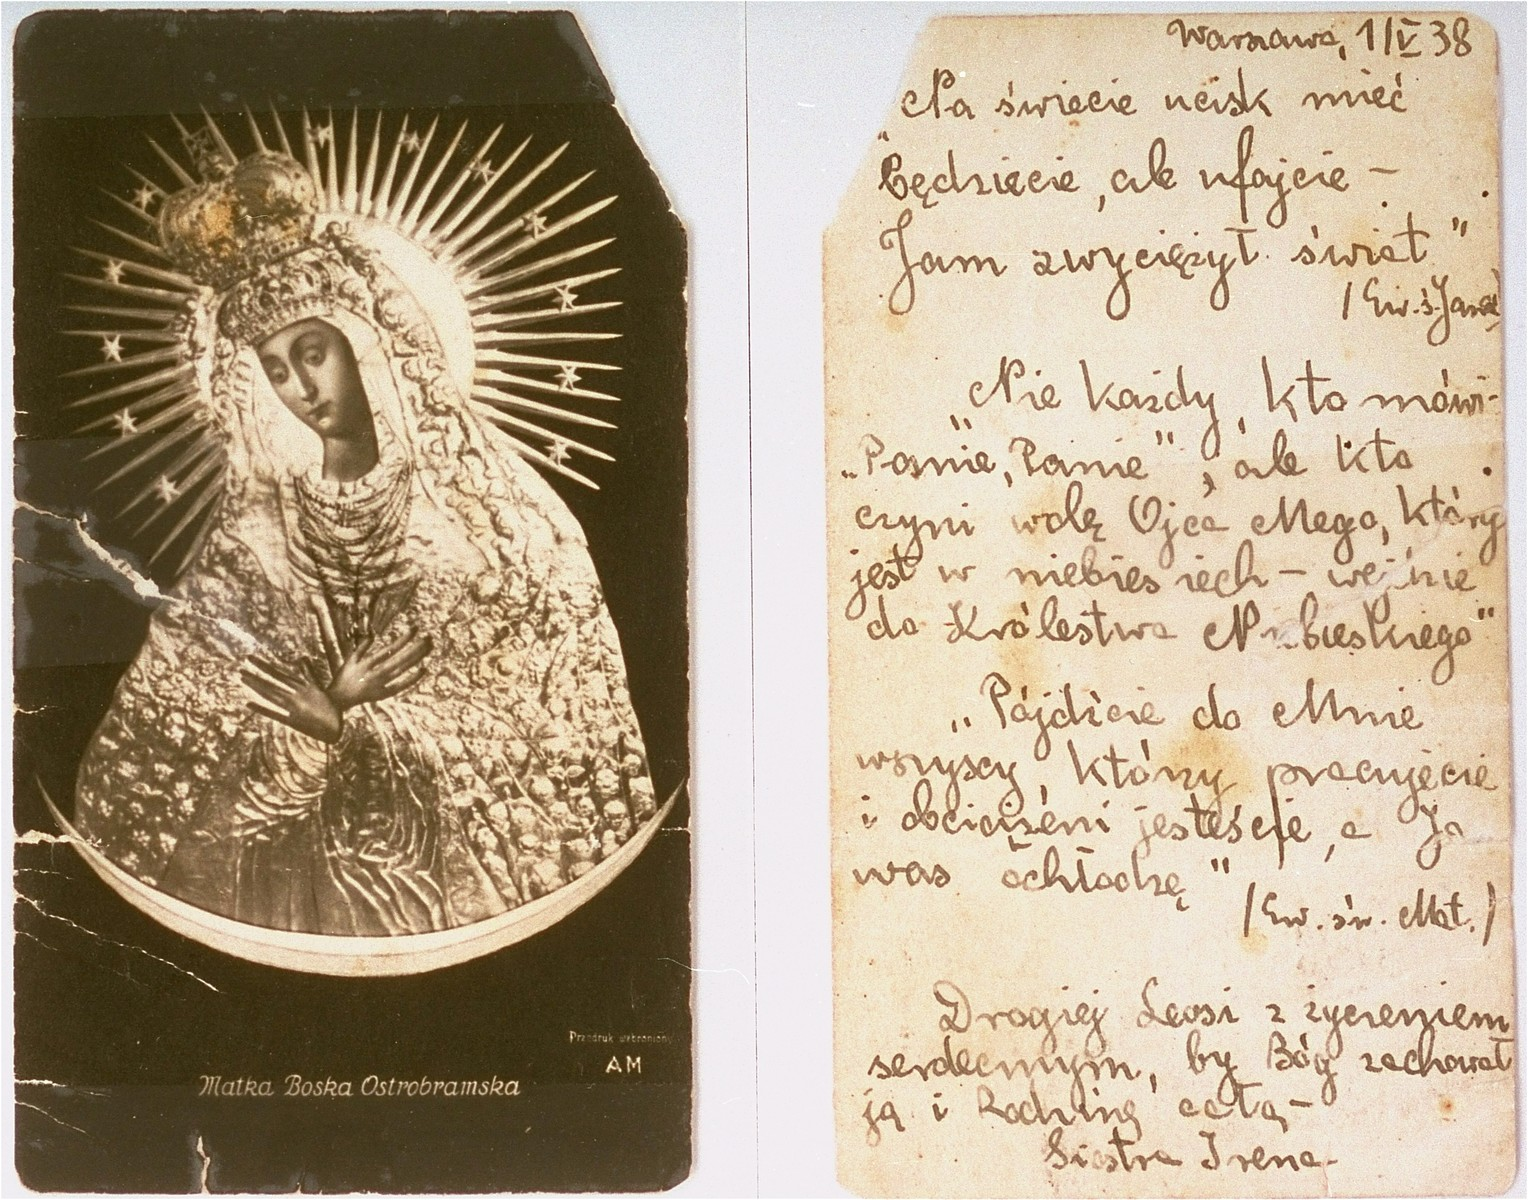 Two sides of a devotional card bearing the image of the Black Madonna of Czestochowa given to Lodzia Hamersztajn by Irena Adamowicz, a Polish woman closely associated with the Jewish underground.    The inscription on the card is dated May 1, 1938, but in fact was written in 1943.  The devotional card, which was carried by Lodzia during her years in hiding, was intended to give credence to the claim that she was a Polish Catholic.